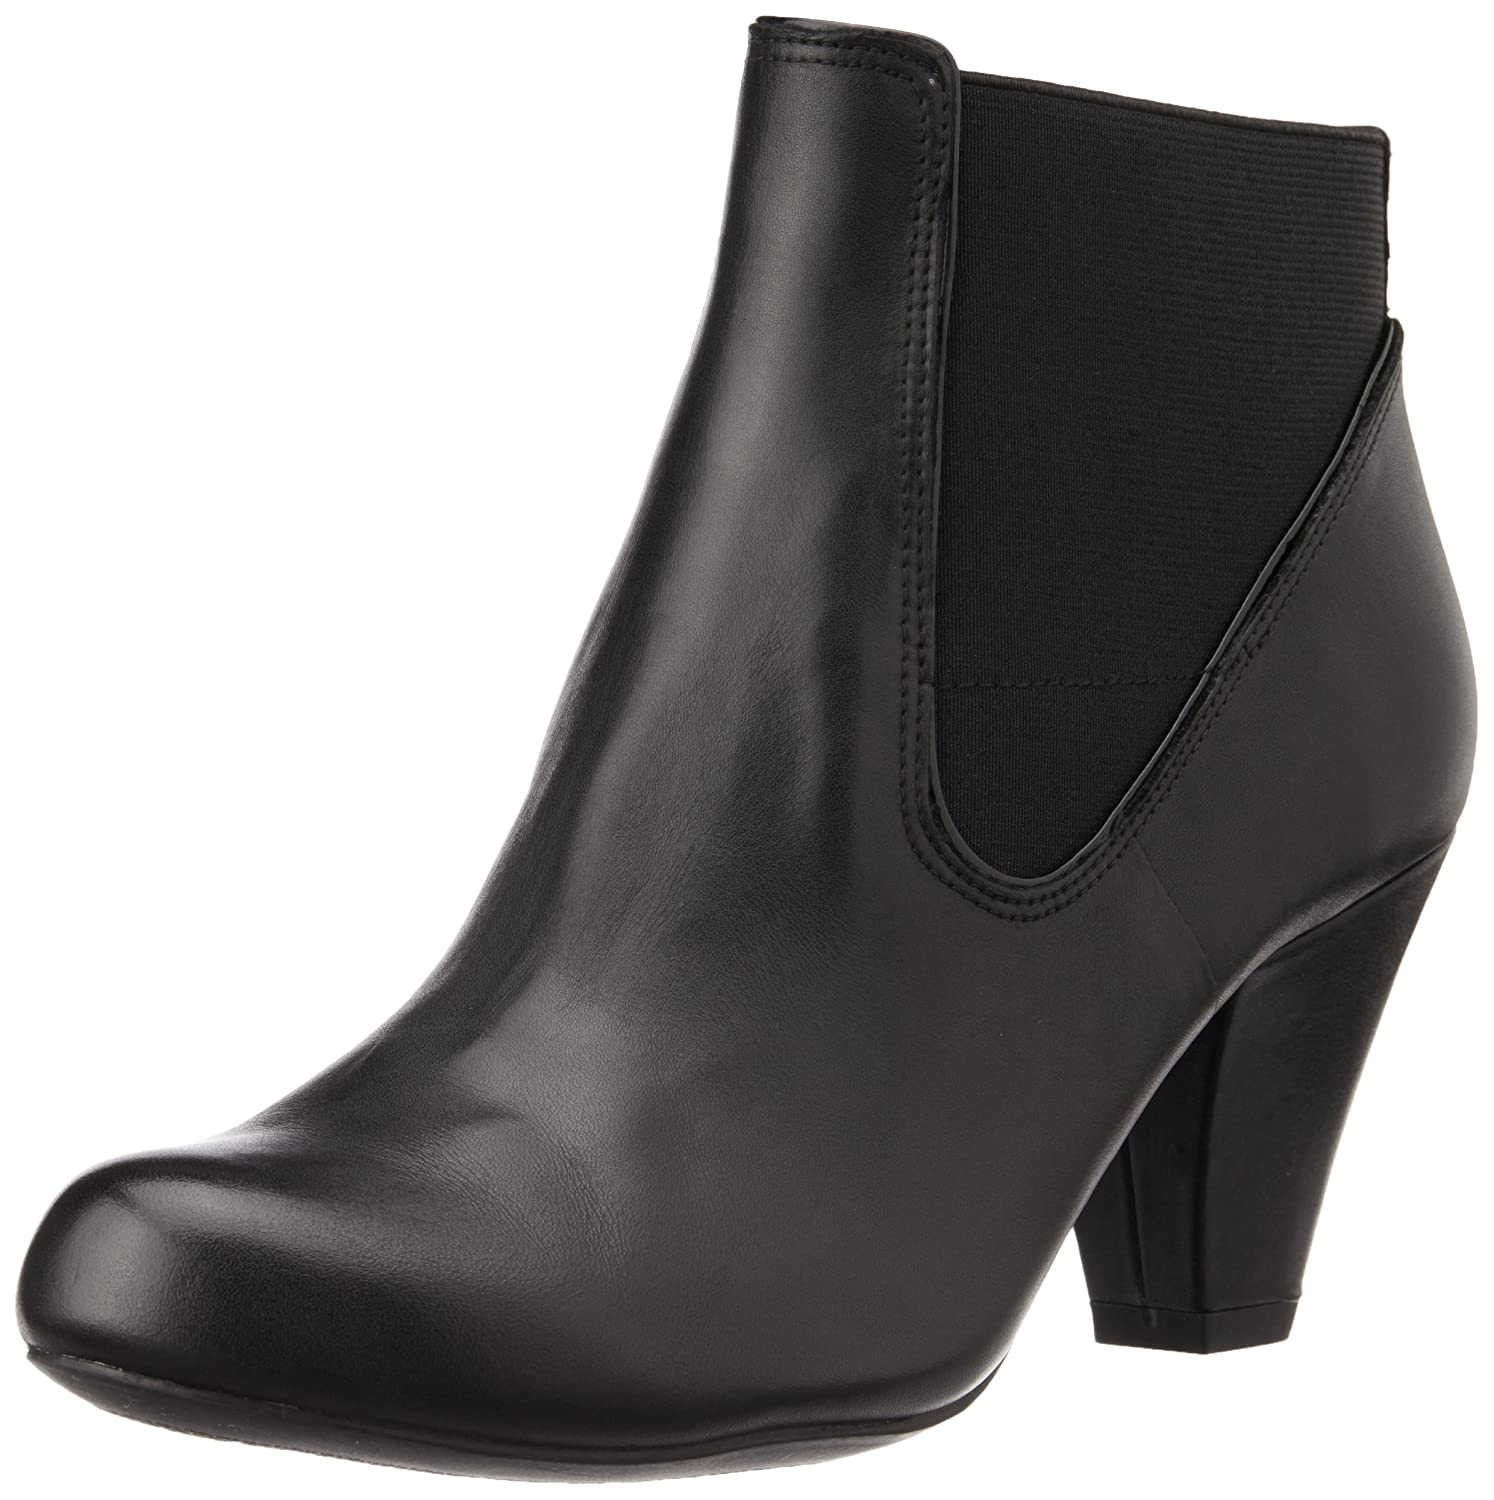 Clarks Women's Coolest Babe Leather Boots